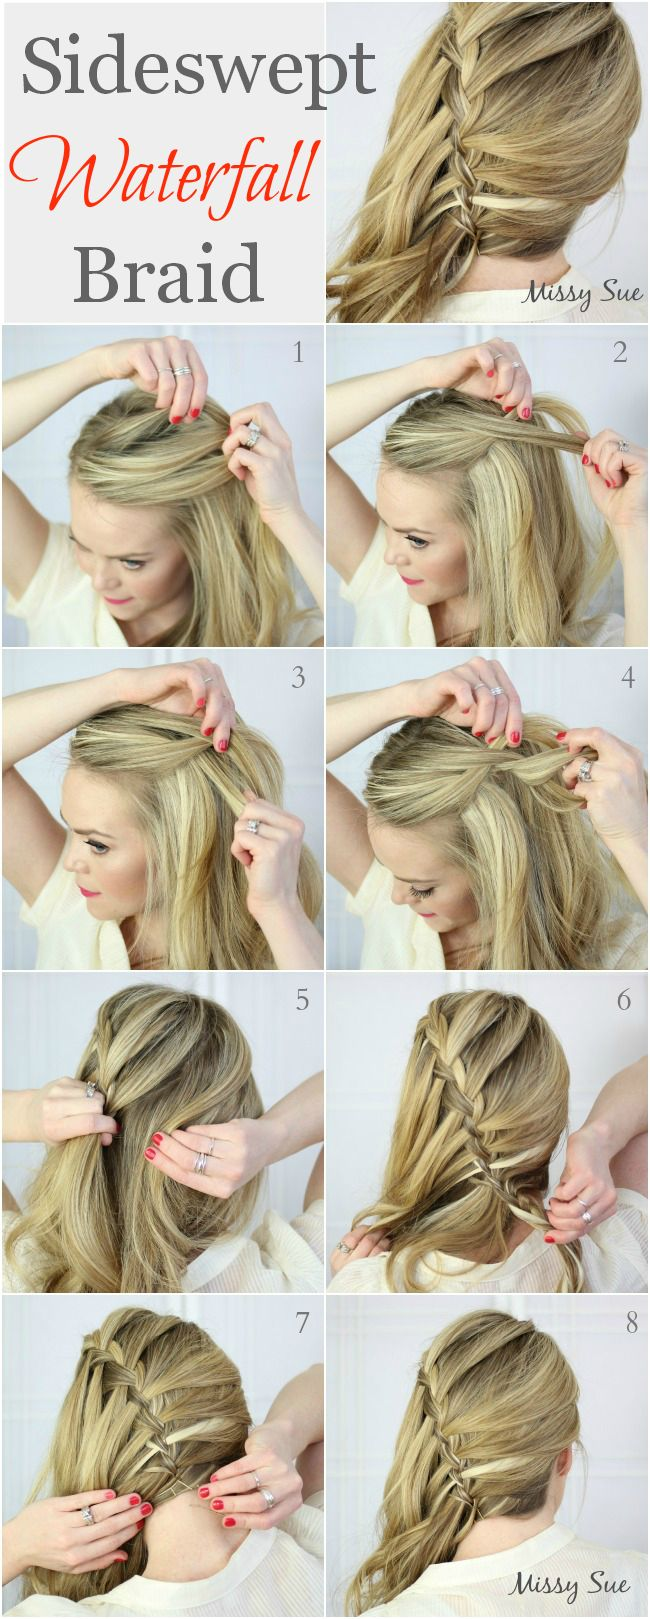 Find This Pin And More On Hair Tutorials Side Swept Waterfall Braid